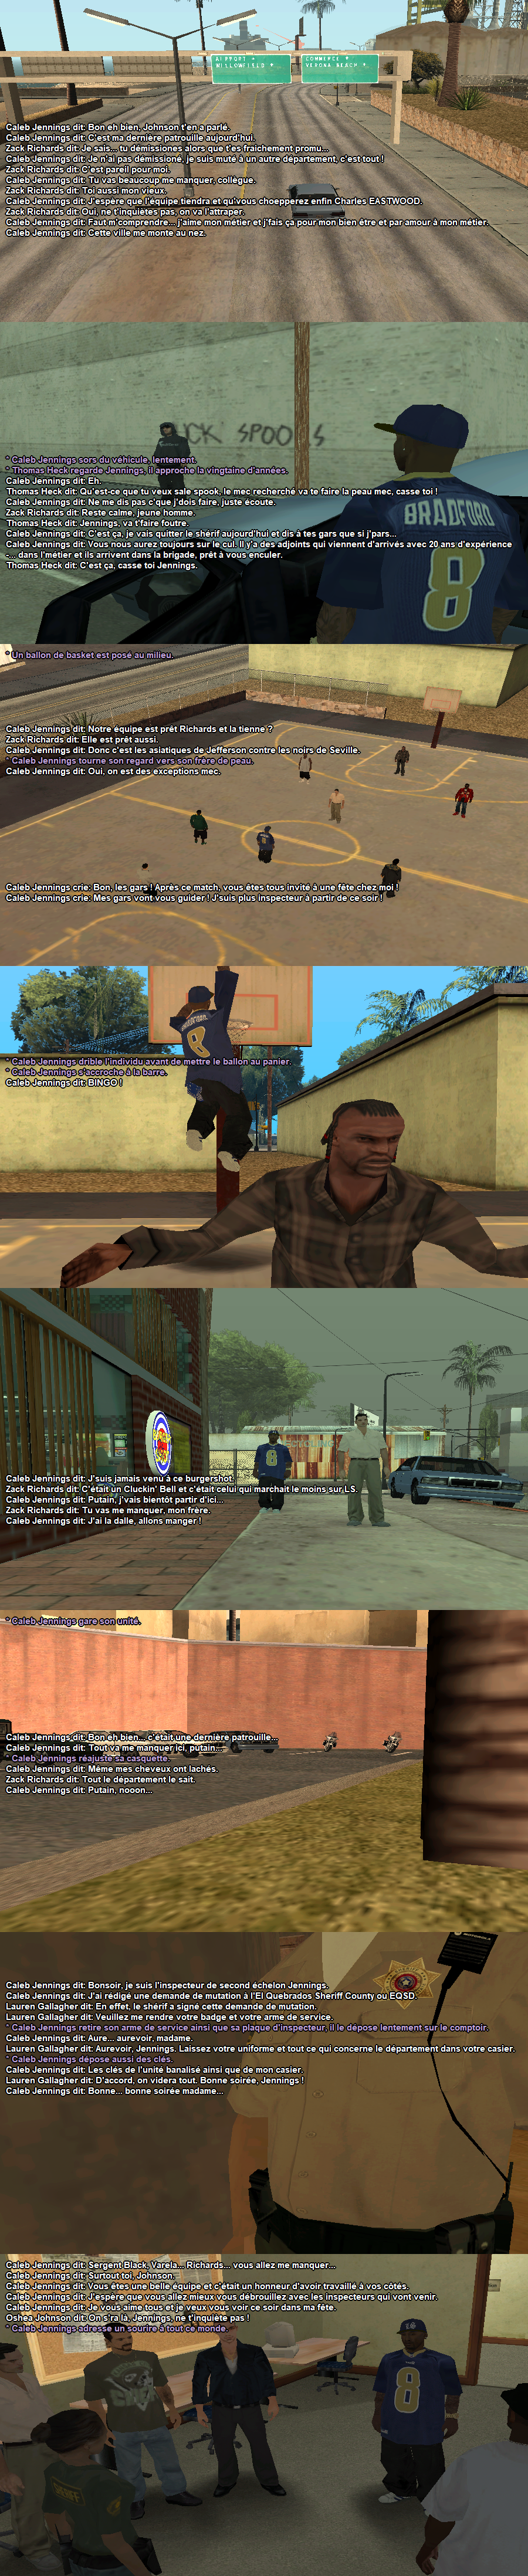 Los Santos Sheriff's Department - A tradition of service (8) - Page 16 1536249467-a